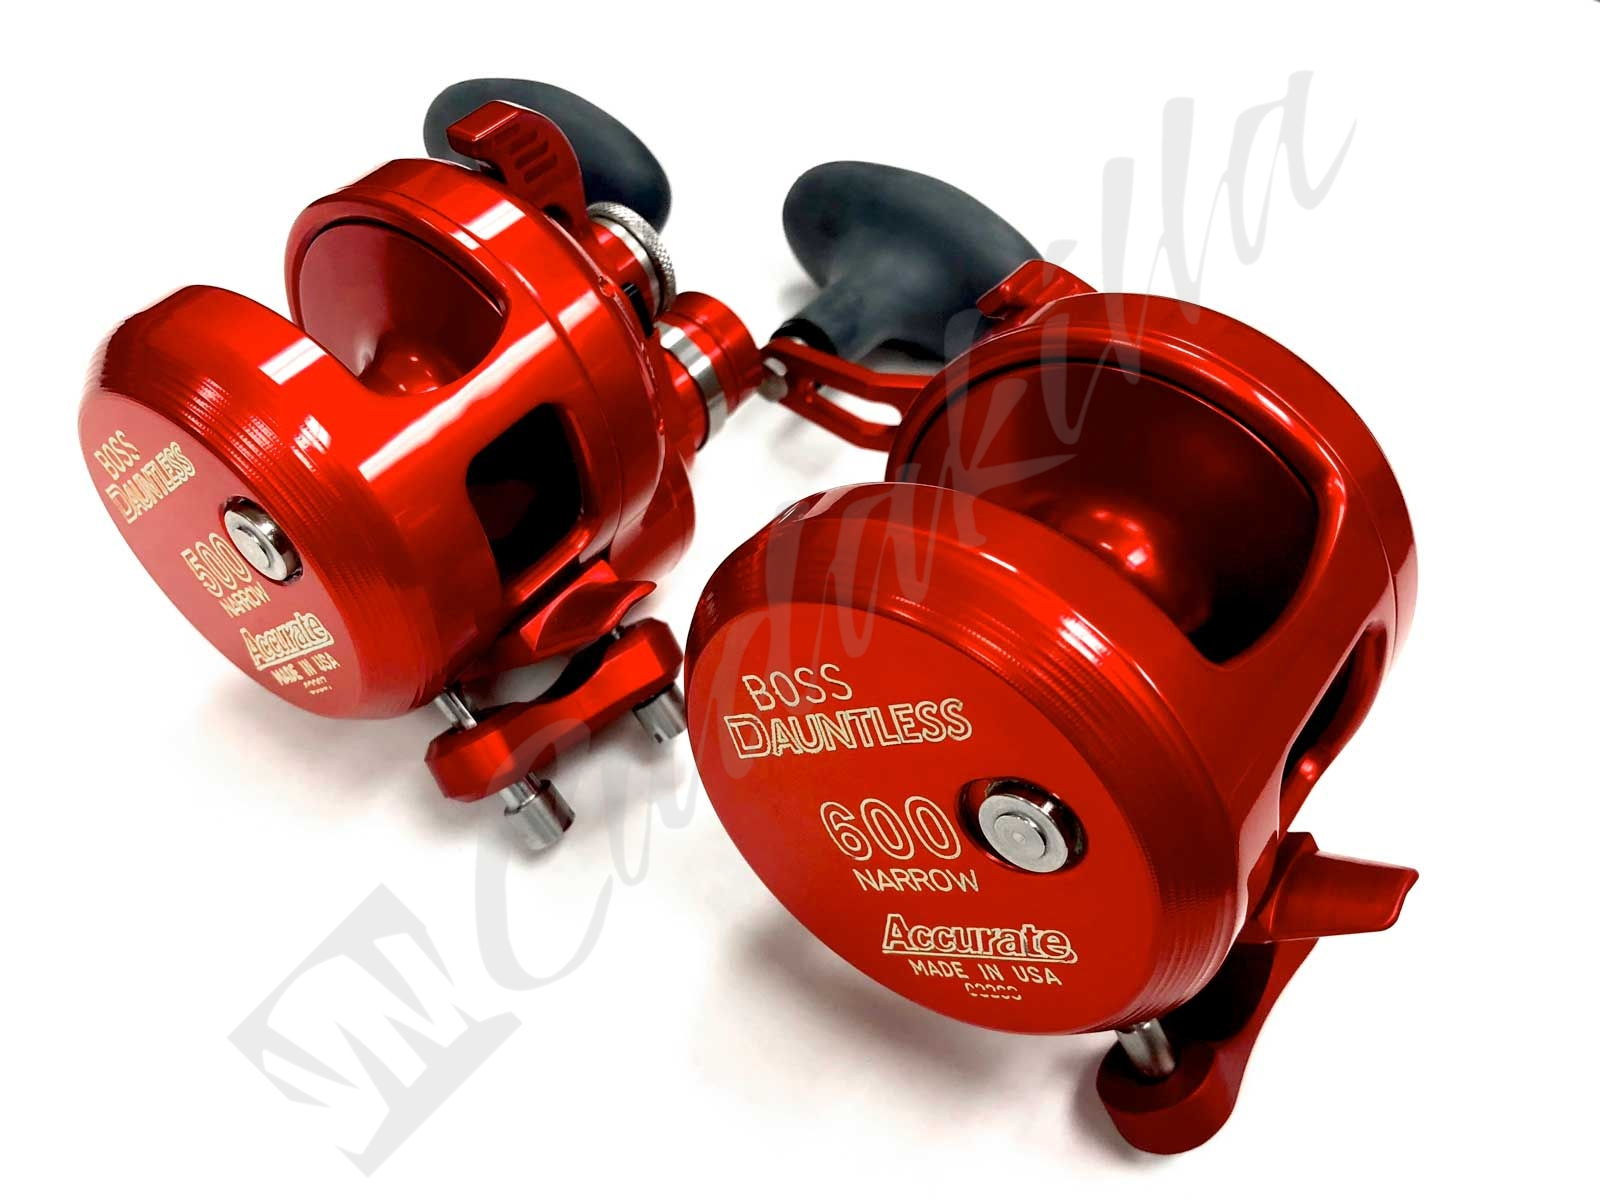 Accurate Dauntless DX2 Conventional Reel - Red